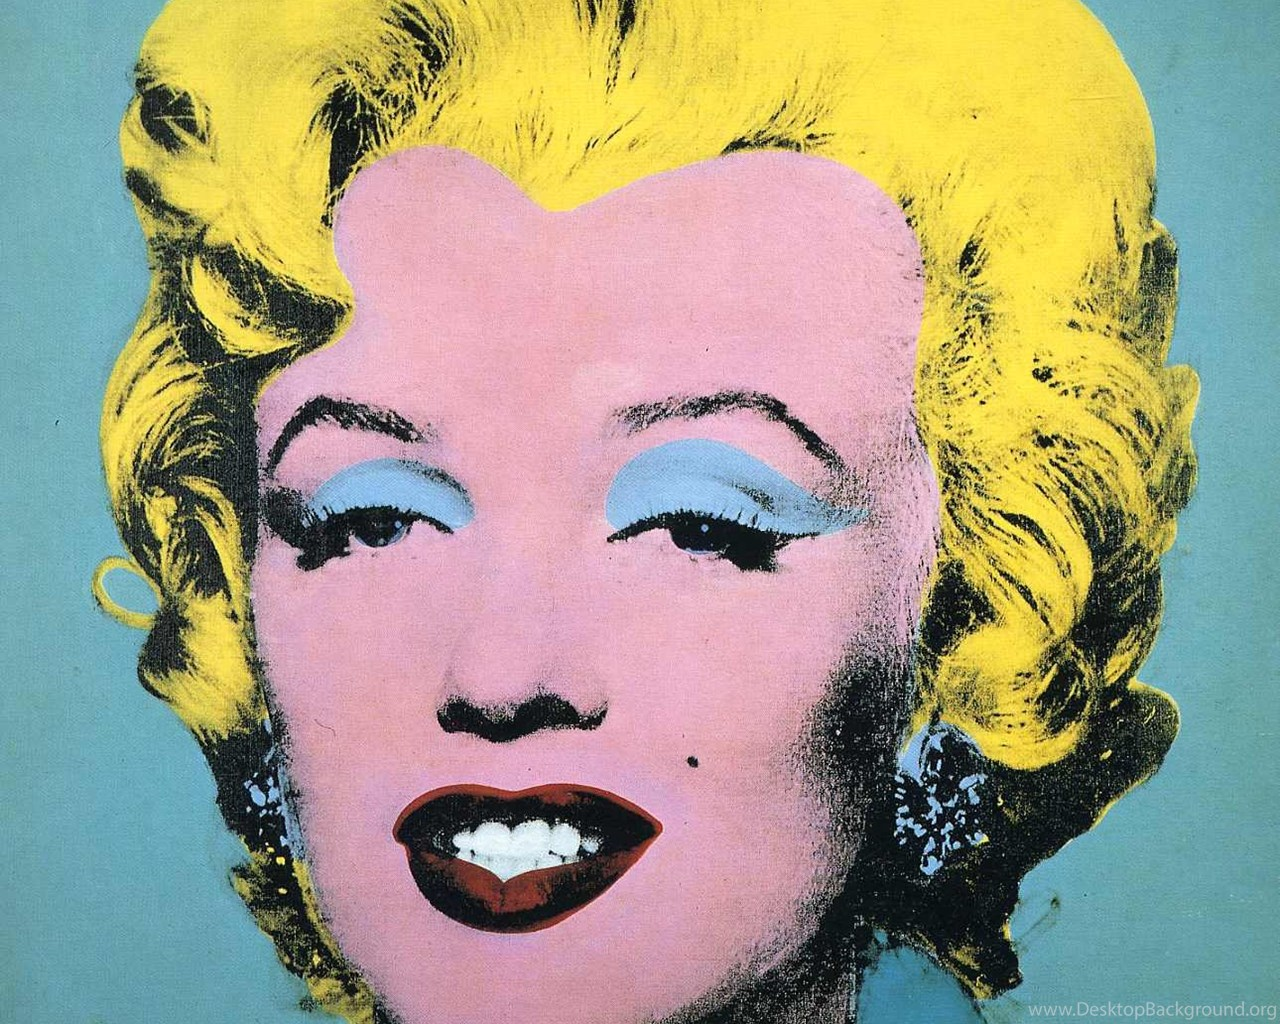 Marilyn Pop Art Andy Warhol Marilyn Monroe Pop Art Wallpapers Image By Andy Warhol